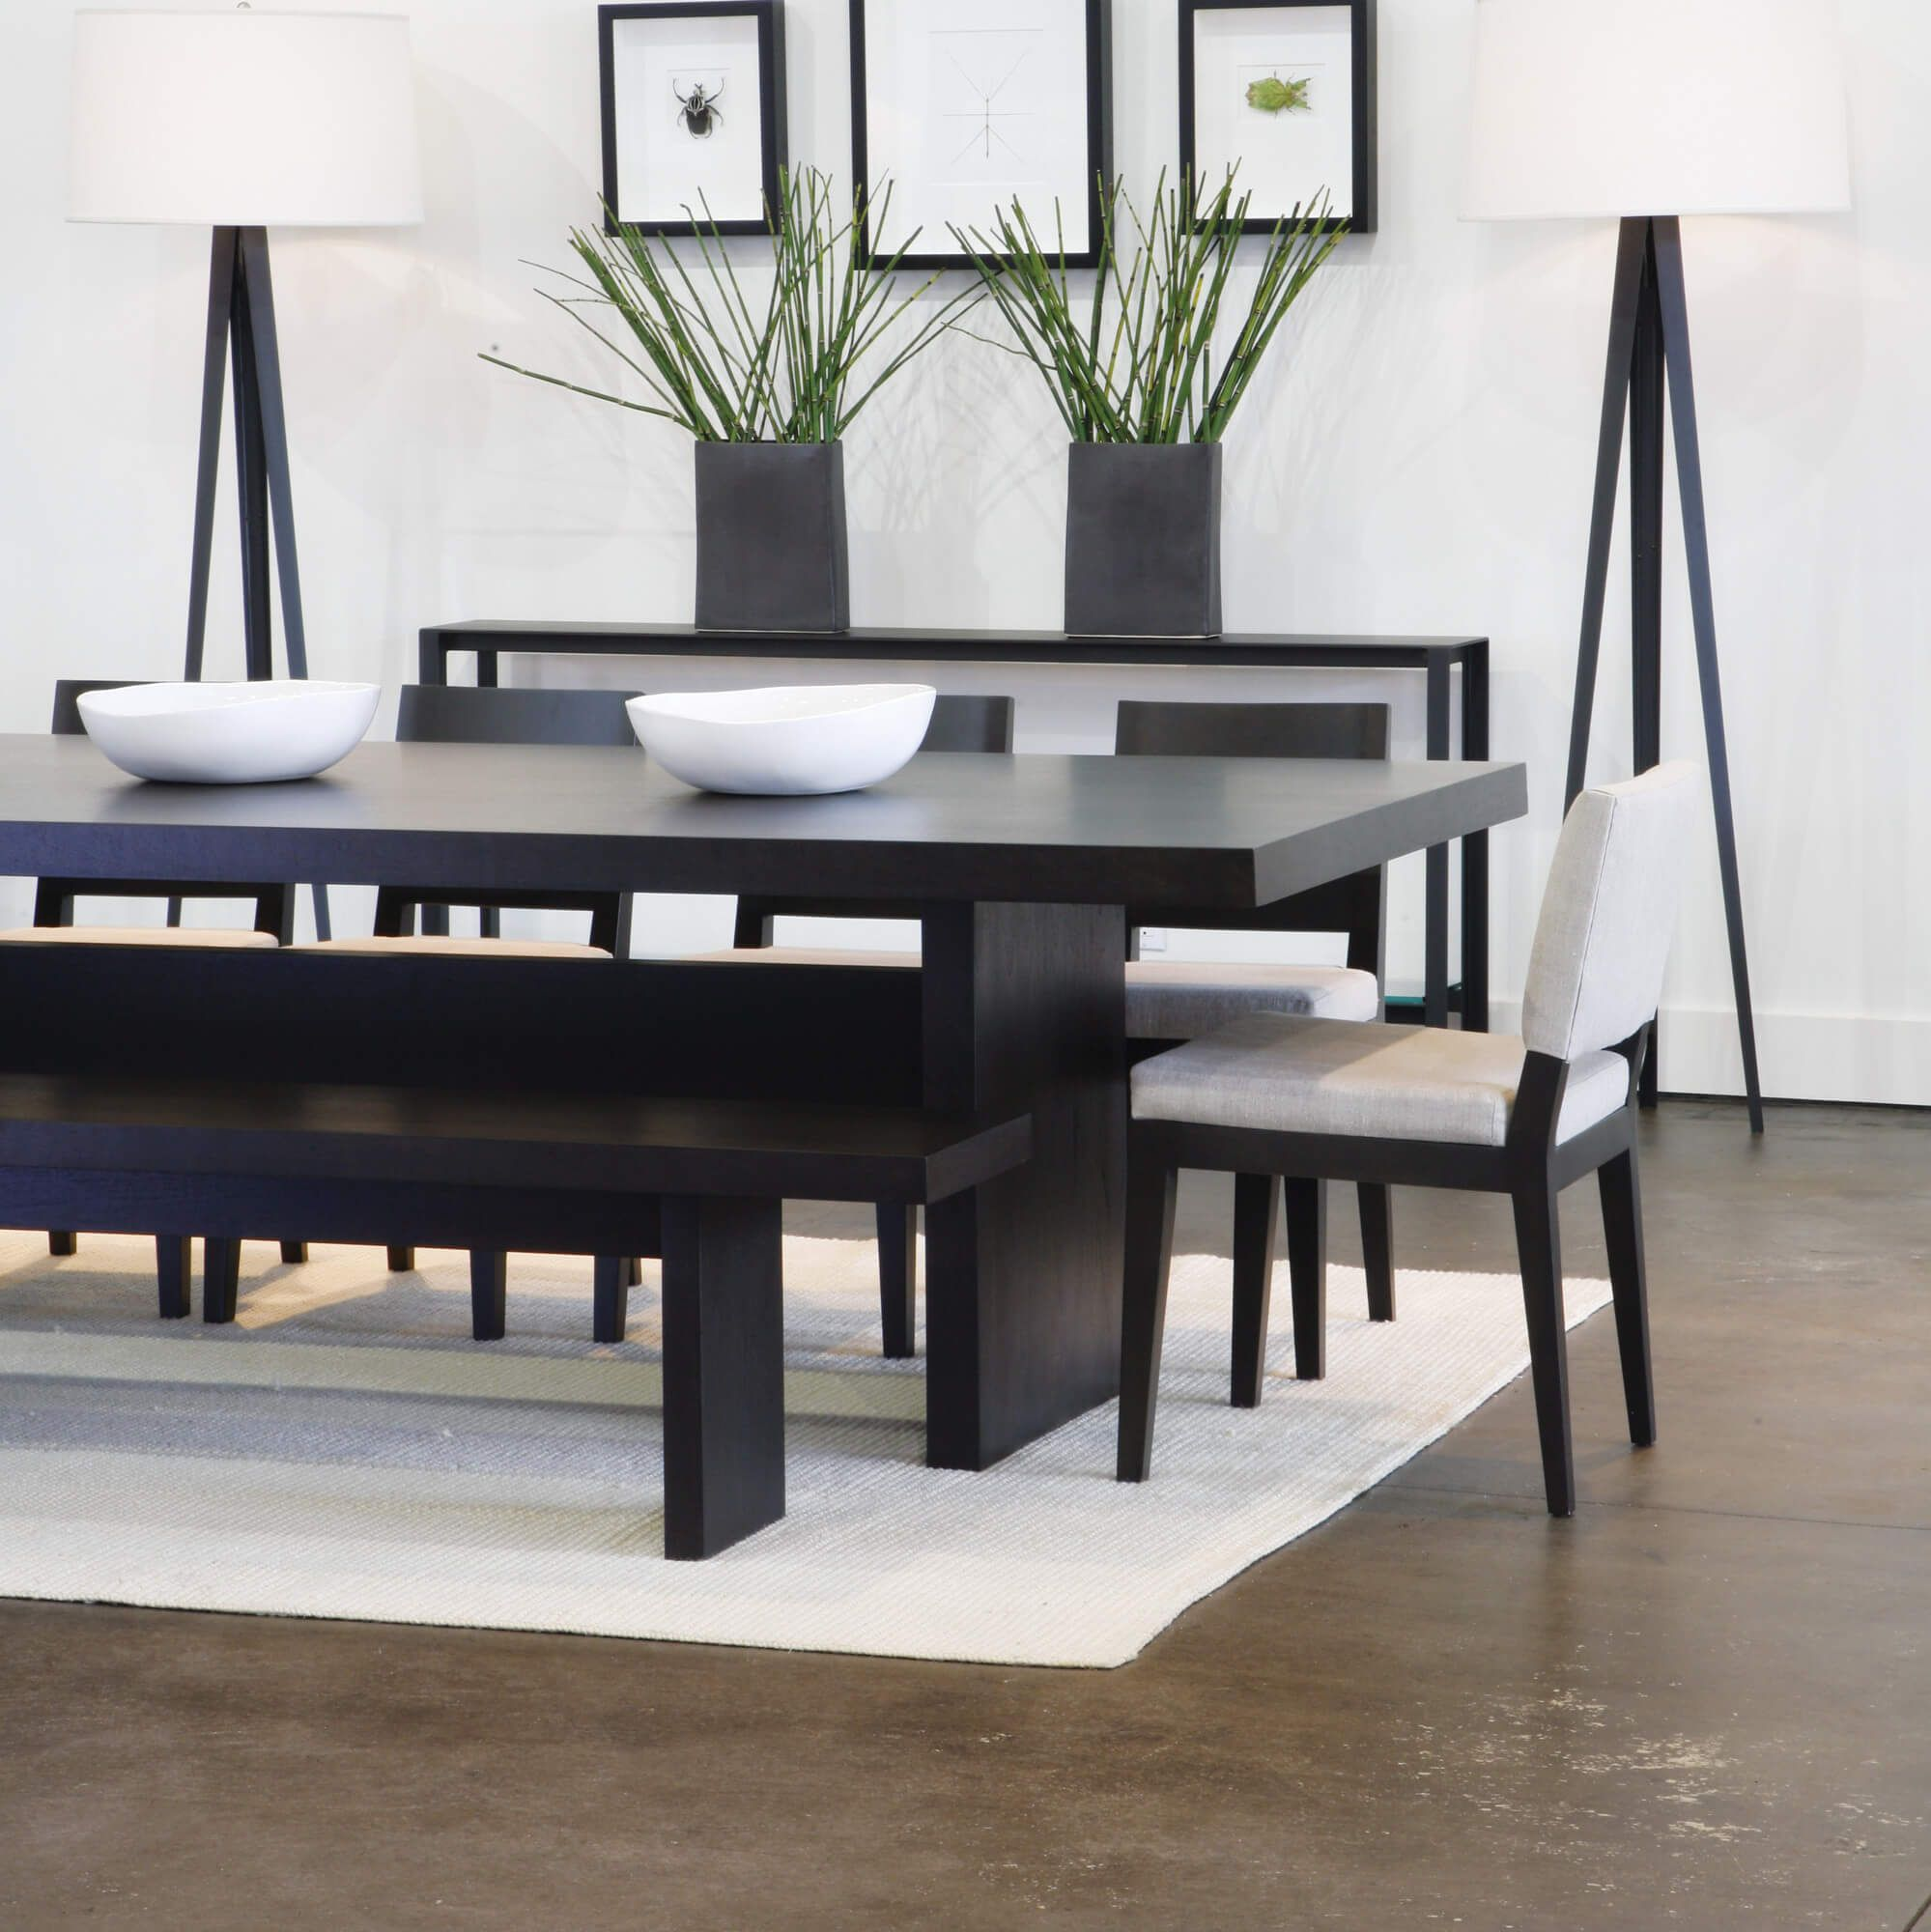 26 Dining Room Sets Big And Small With Bench Seating 2021 Minimalist Dining Room Contemporary Dining Room Sets Modern Dining Room Set